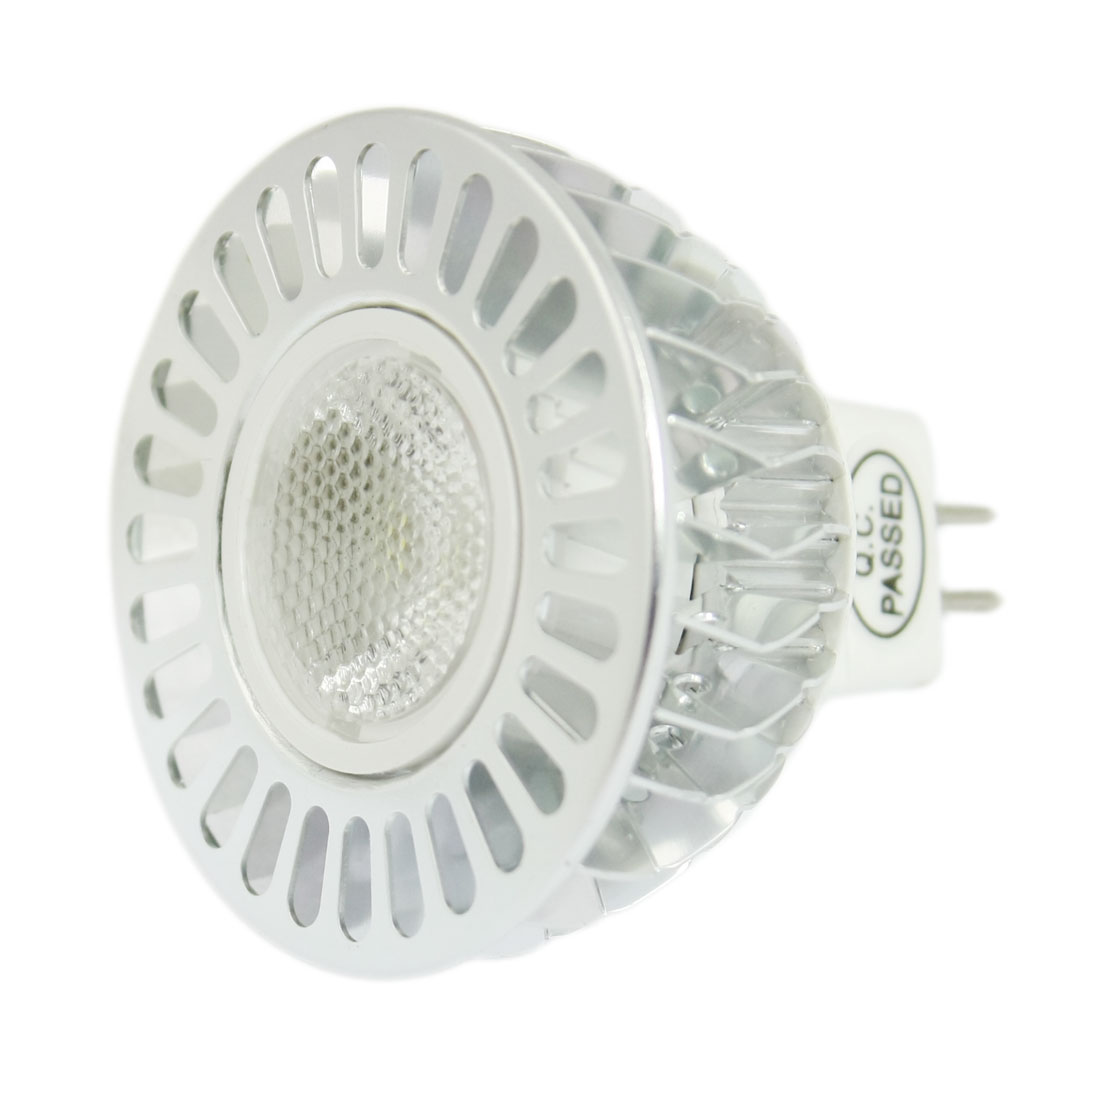 MR16 3W White LED Light Energy Saving Spot Lamp Bulb 5700K